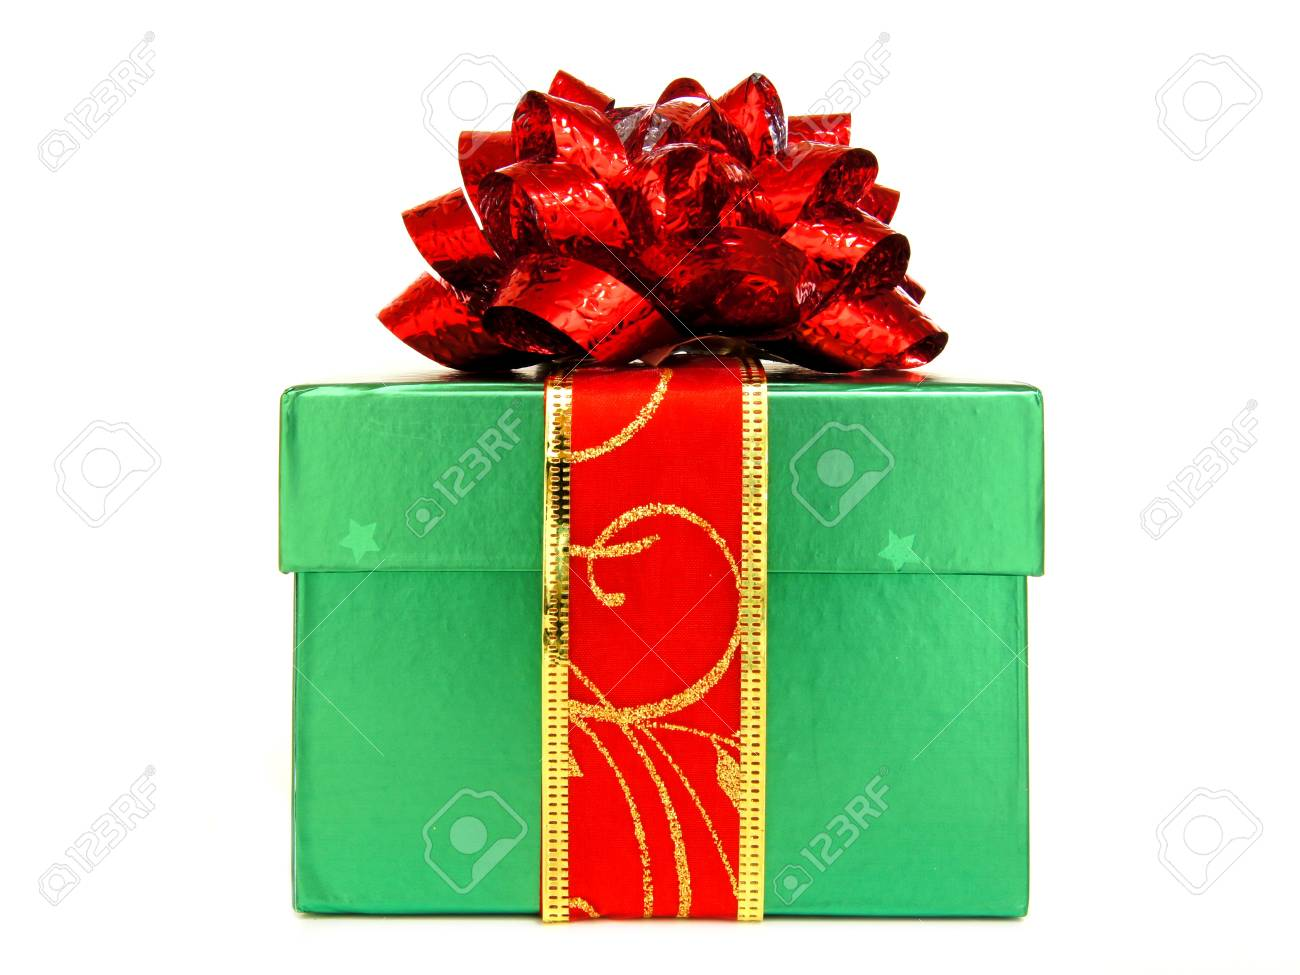 Single Green Christmas Gift Box With Red Bow And Ribbon